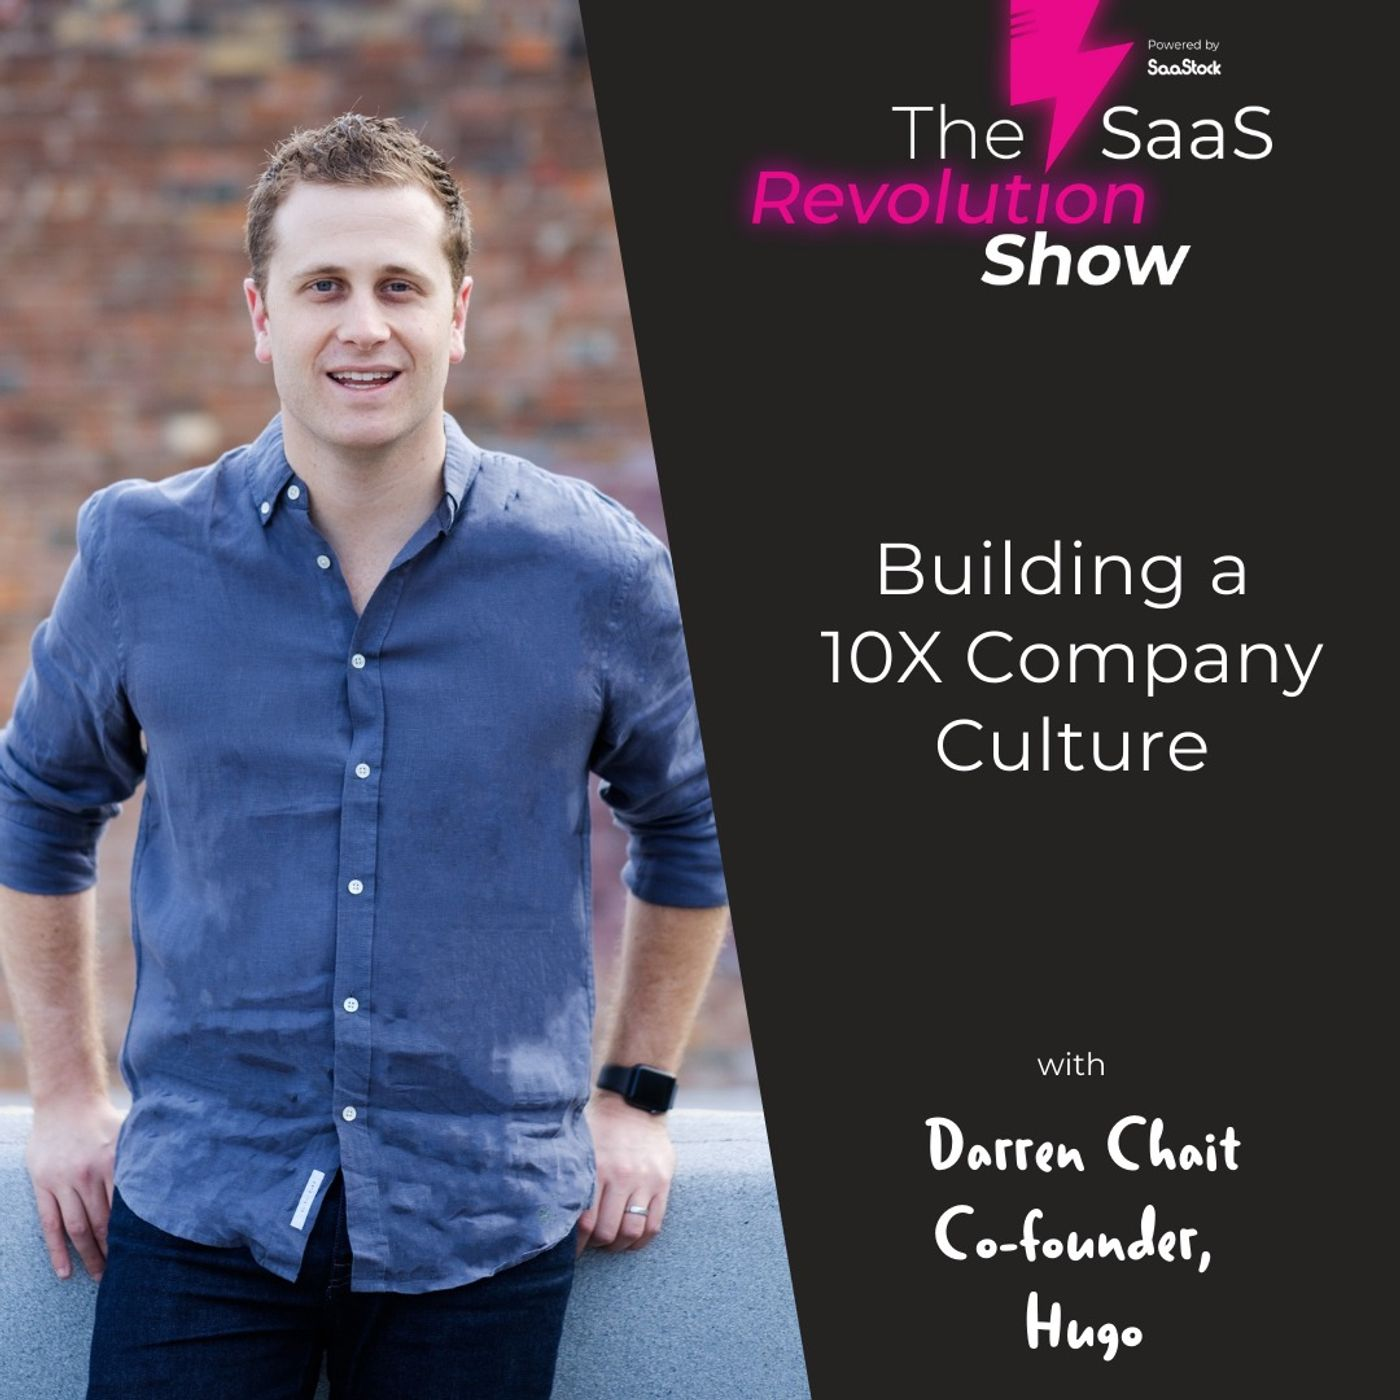 Building a 10x Company Culture with Darren Chait, Hugo